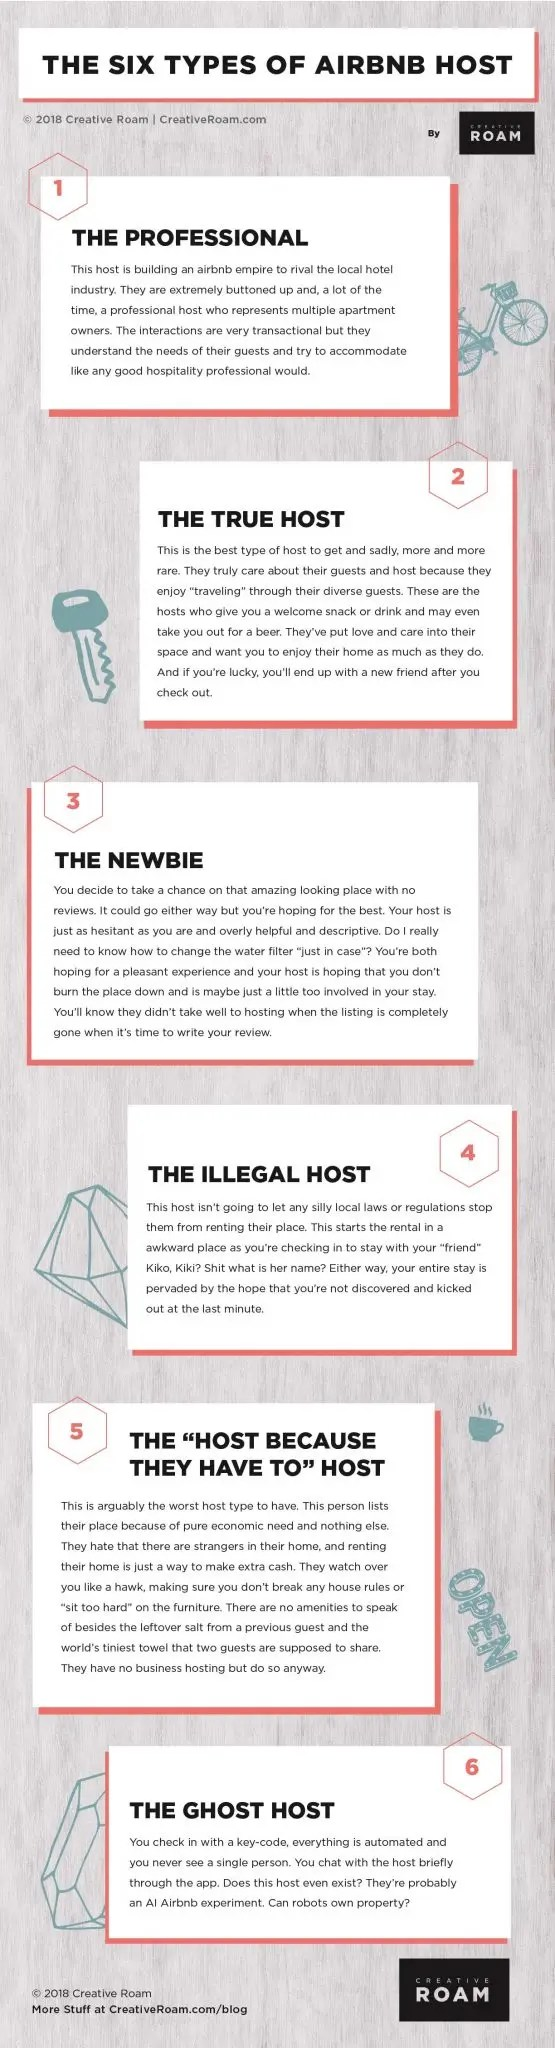 The Six Types of Airbnb Hosts | Creative Roam airbnb